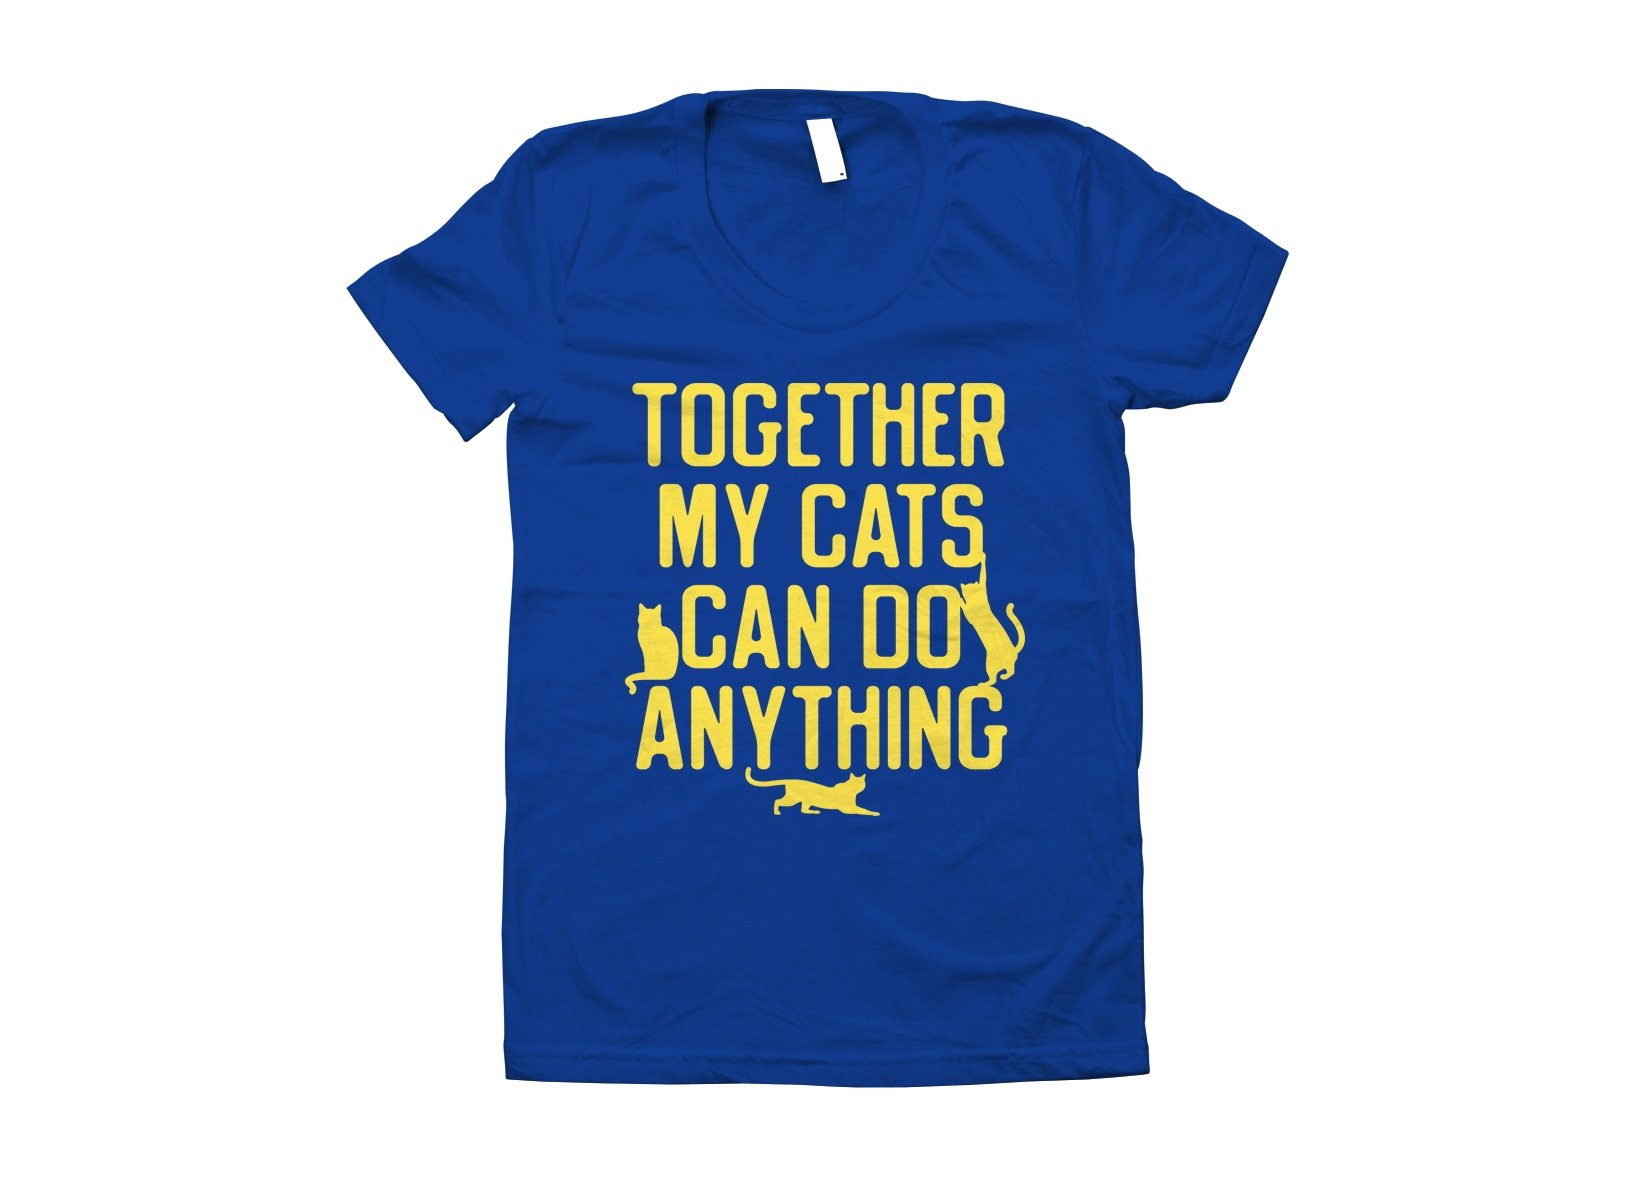 Together My Cats Can Do Anything on Juniors T-Shirt